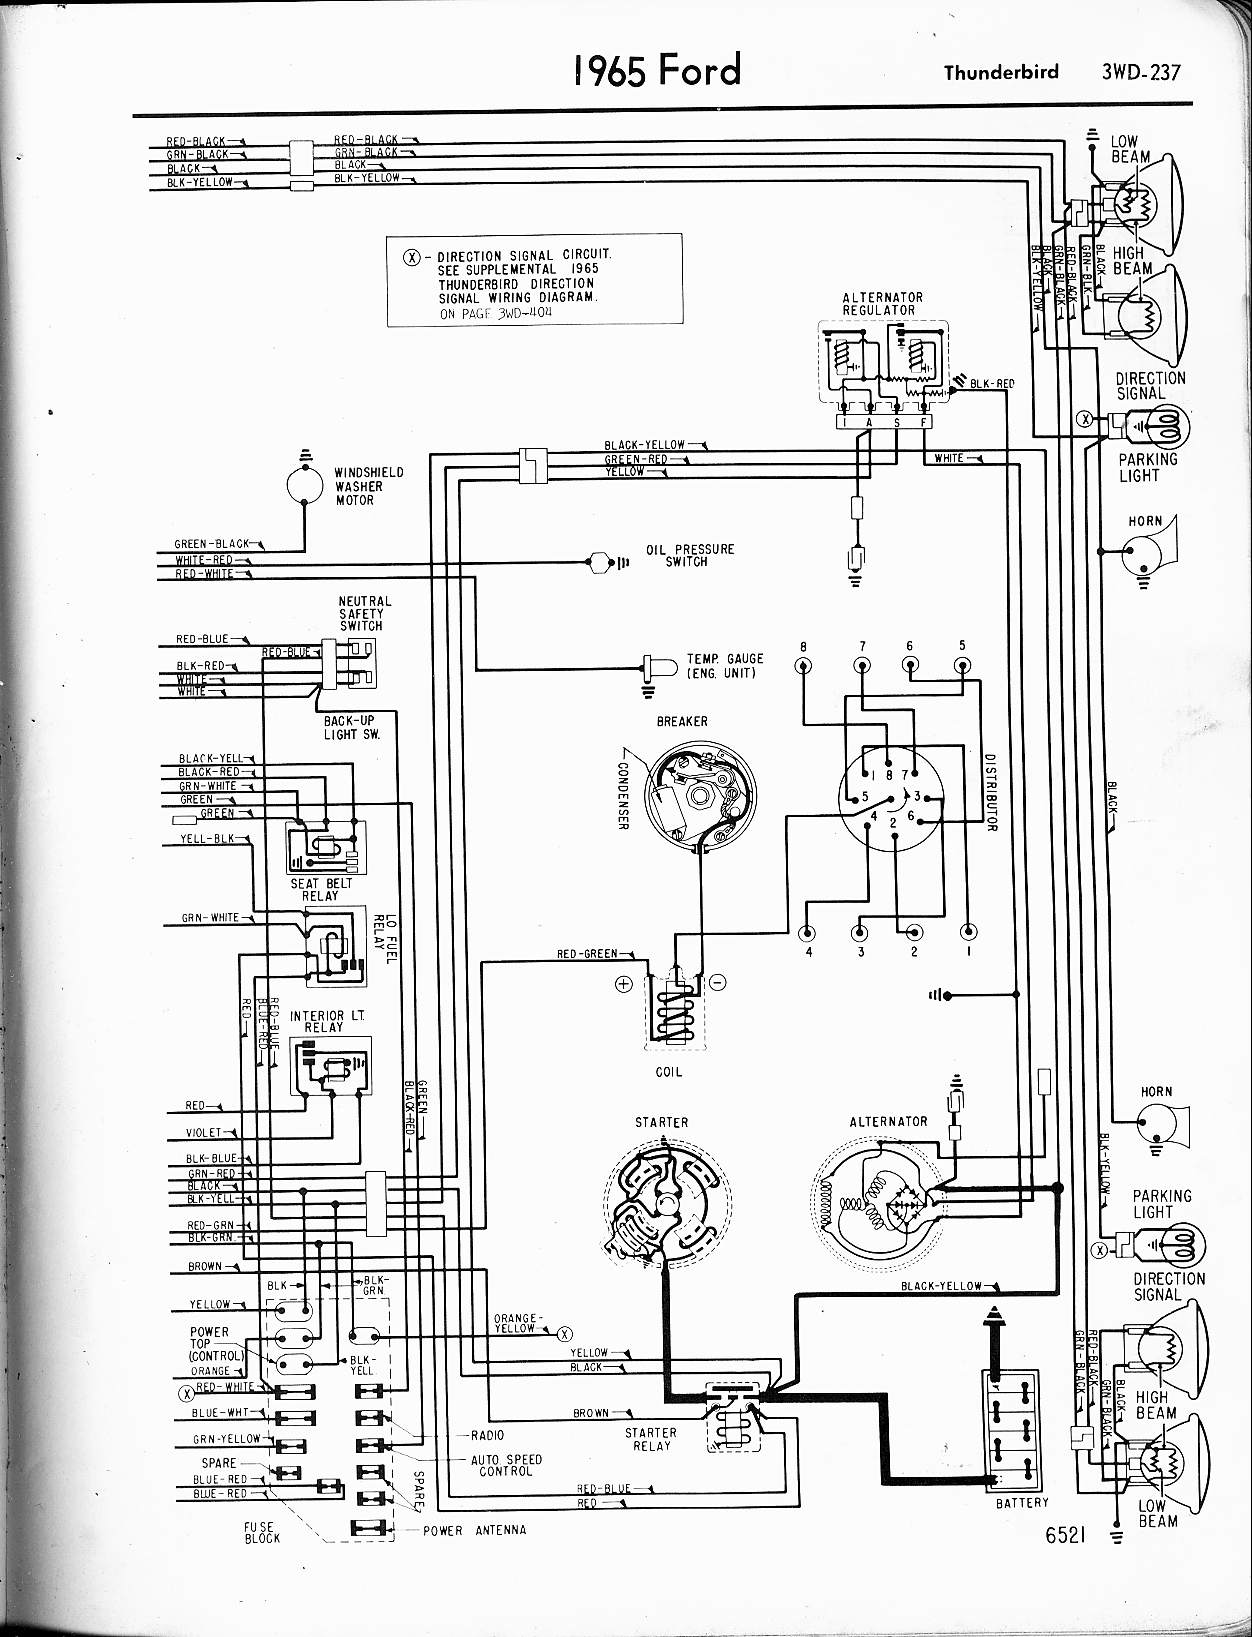 MWire5765 237 57 65 ford wiring diagrams 1961 ford truck wiring diagram at gsmportal.co